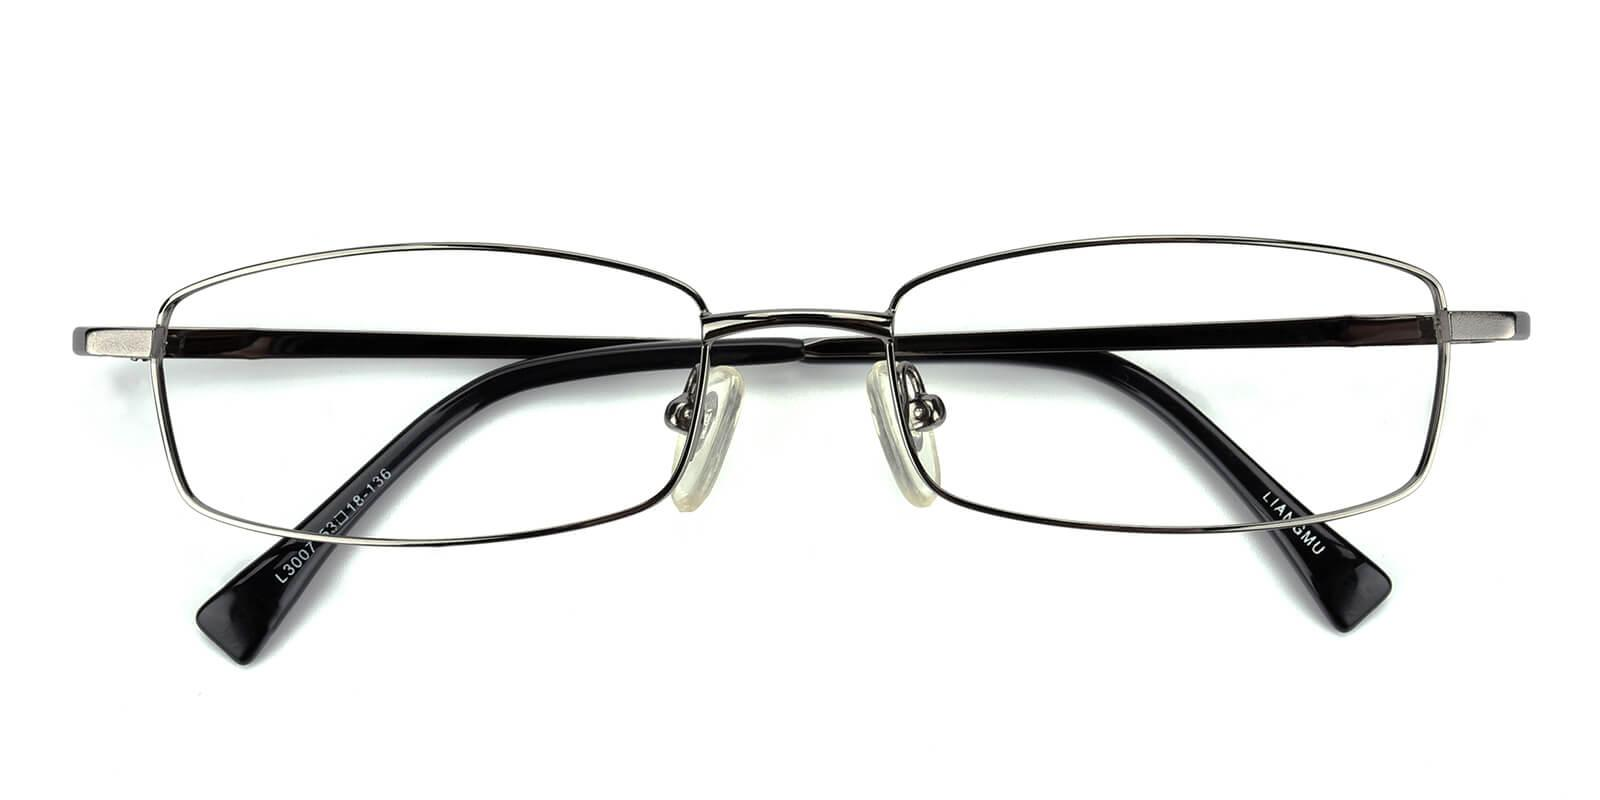 Chistopol-Gun-Rectangle-Metal-Eyeglasses-detail